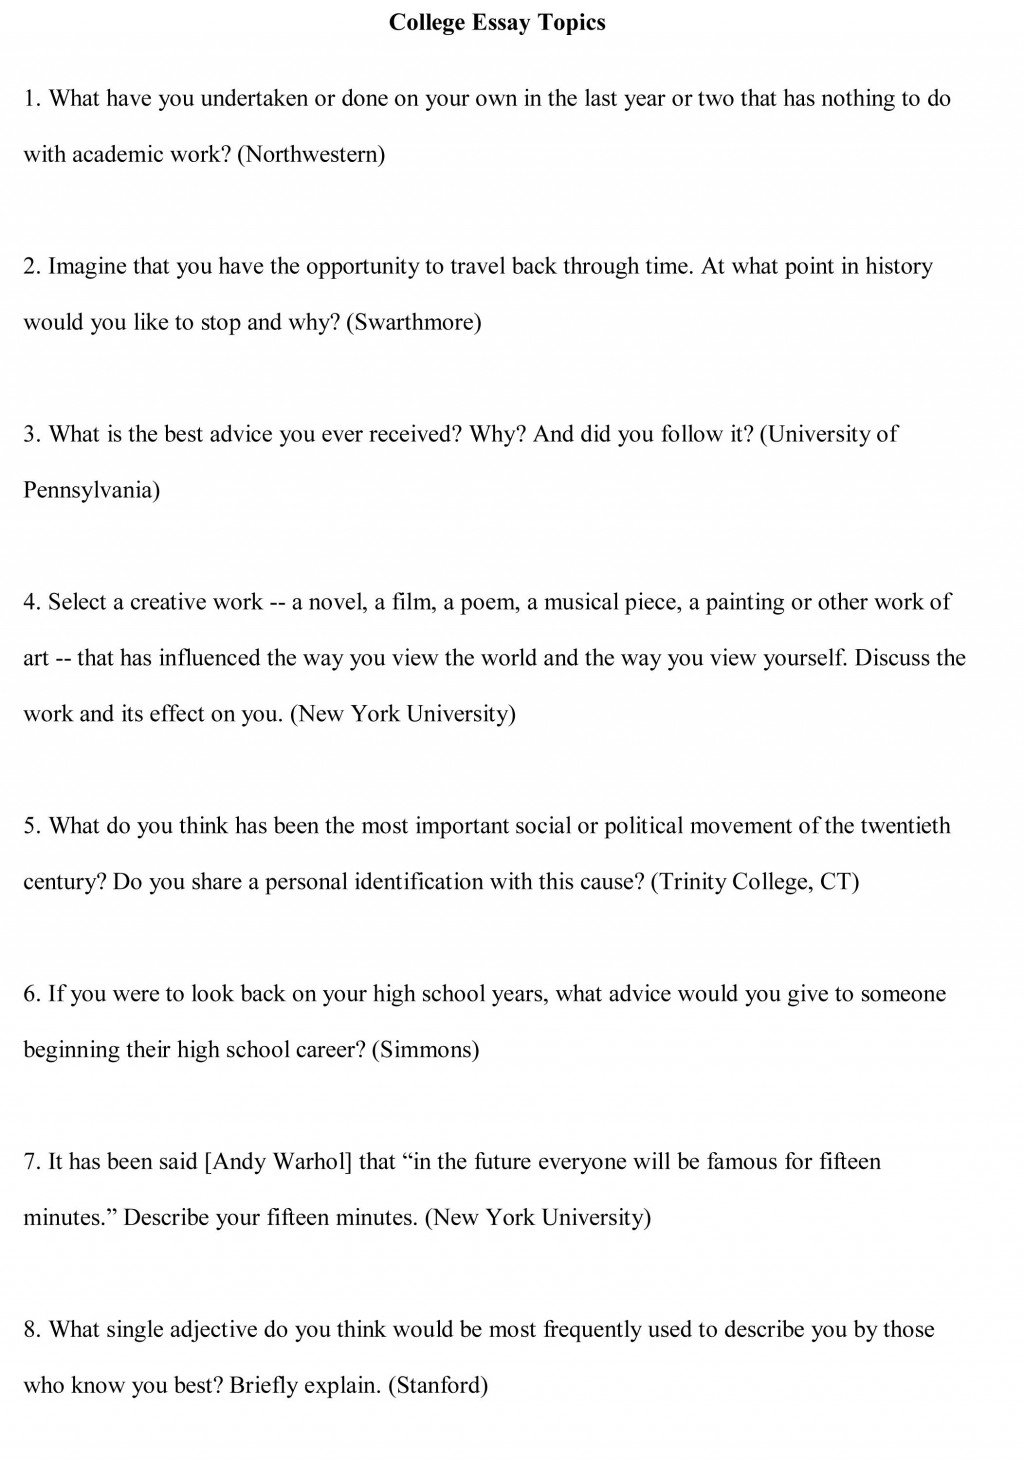 007 English Essay Ideas Synthesis The Of College Ideasfit21042c3003 Medical Research Paper Topics For Imposing Students Large